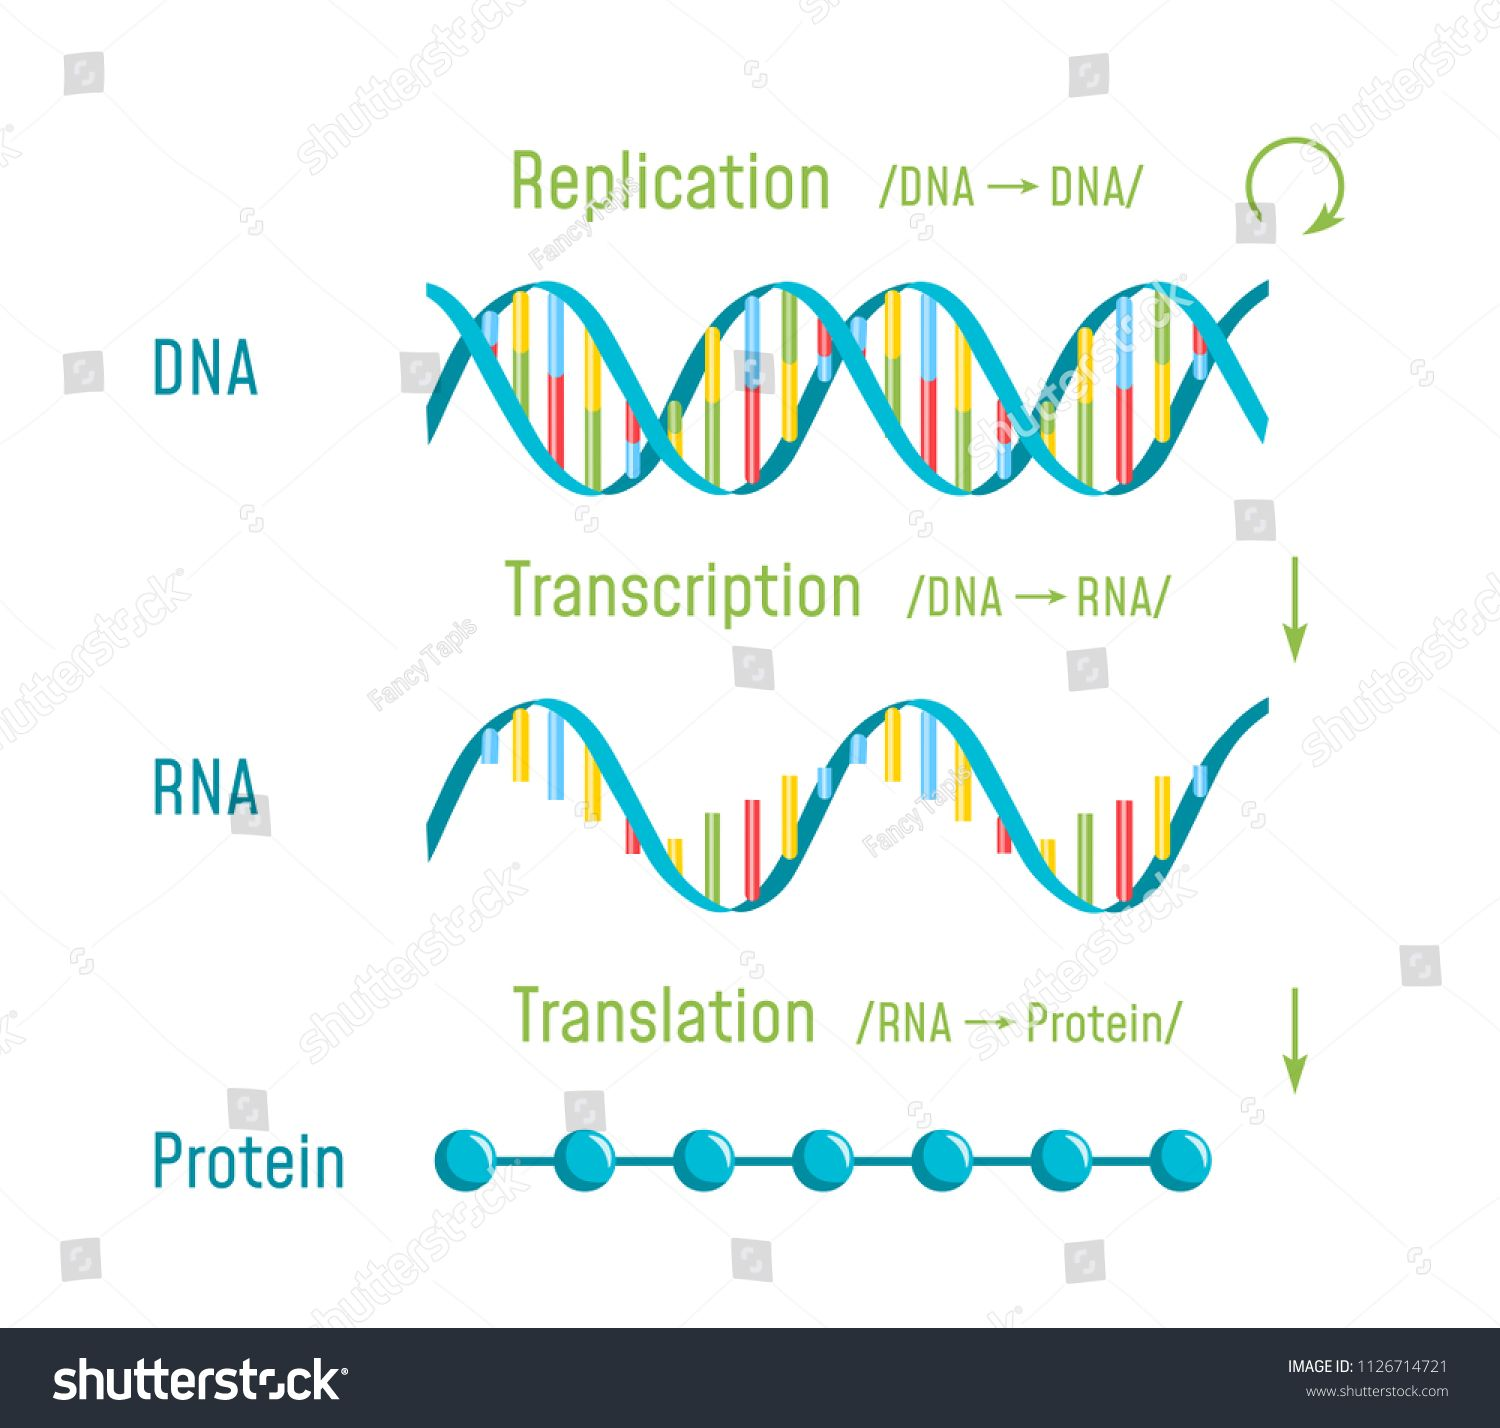 Dna Replication Transcription And Translation The Central Dogma